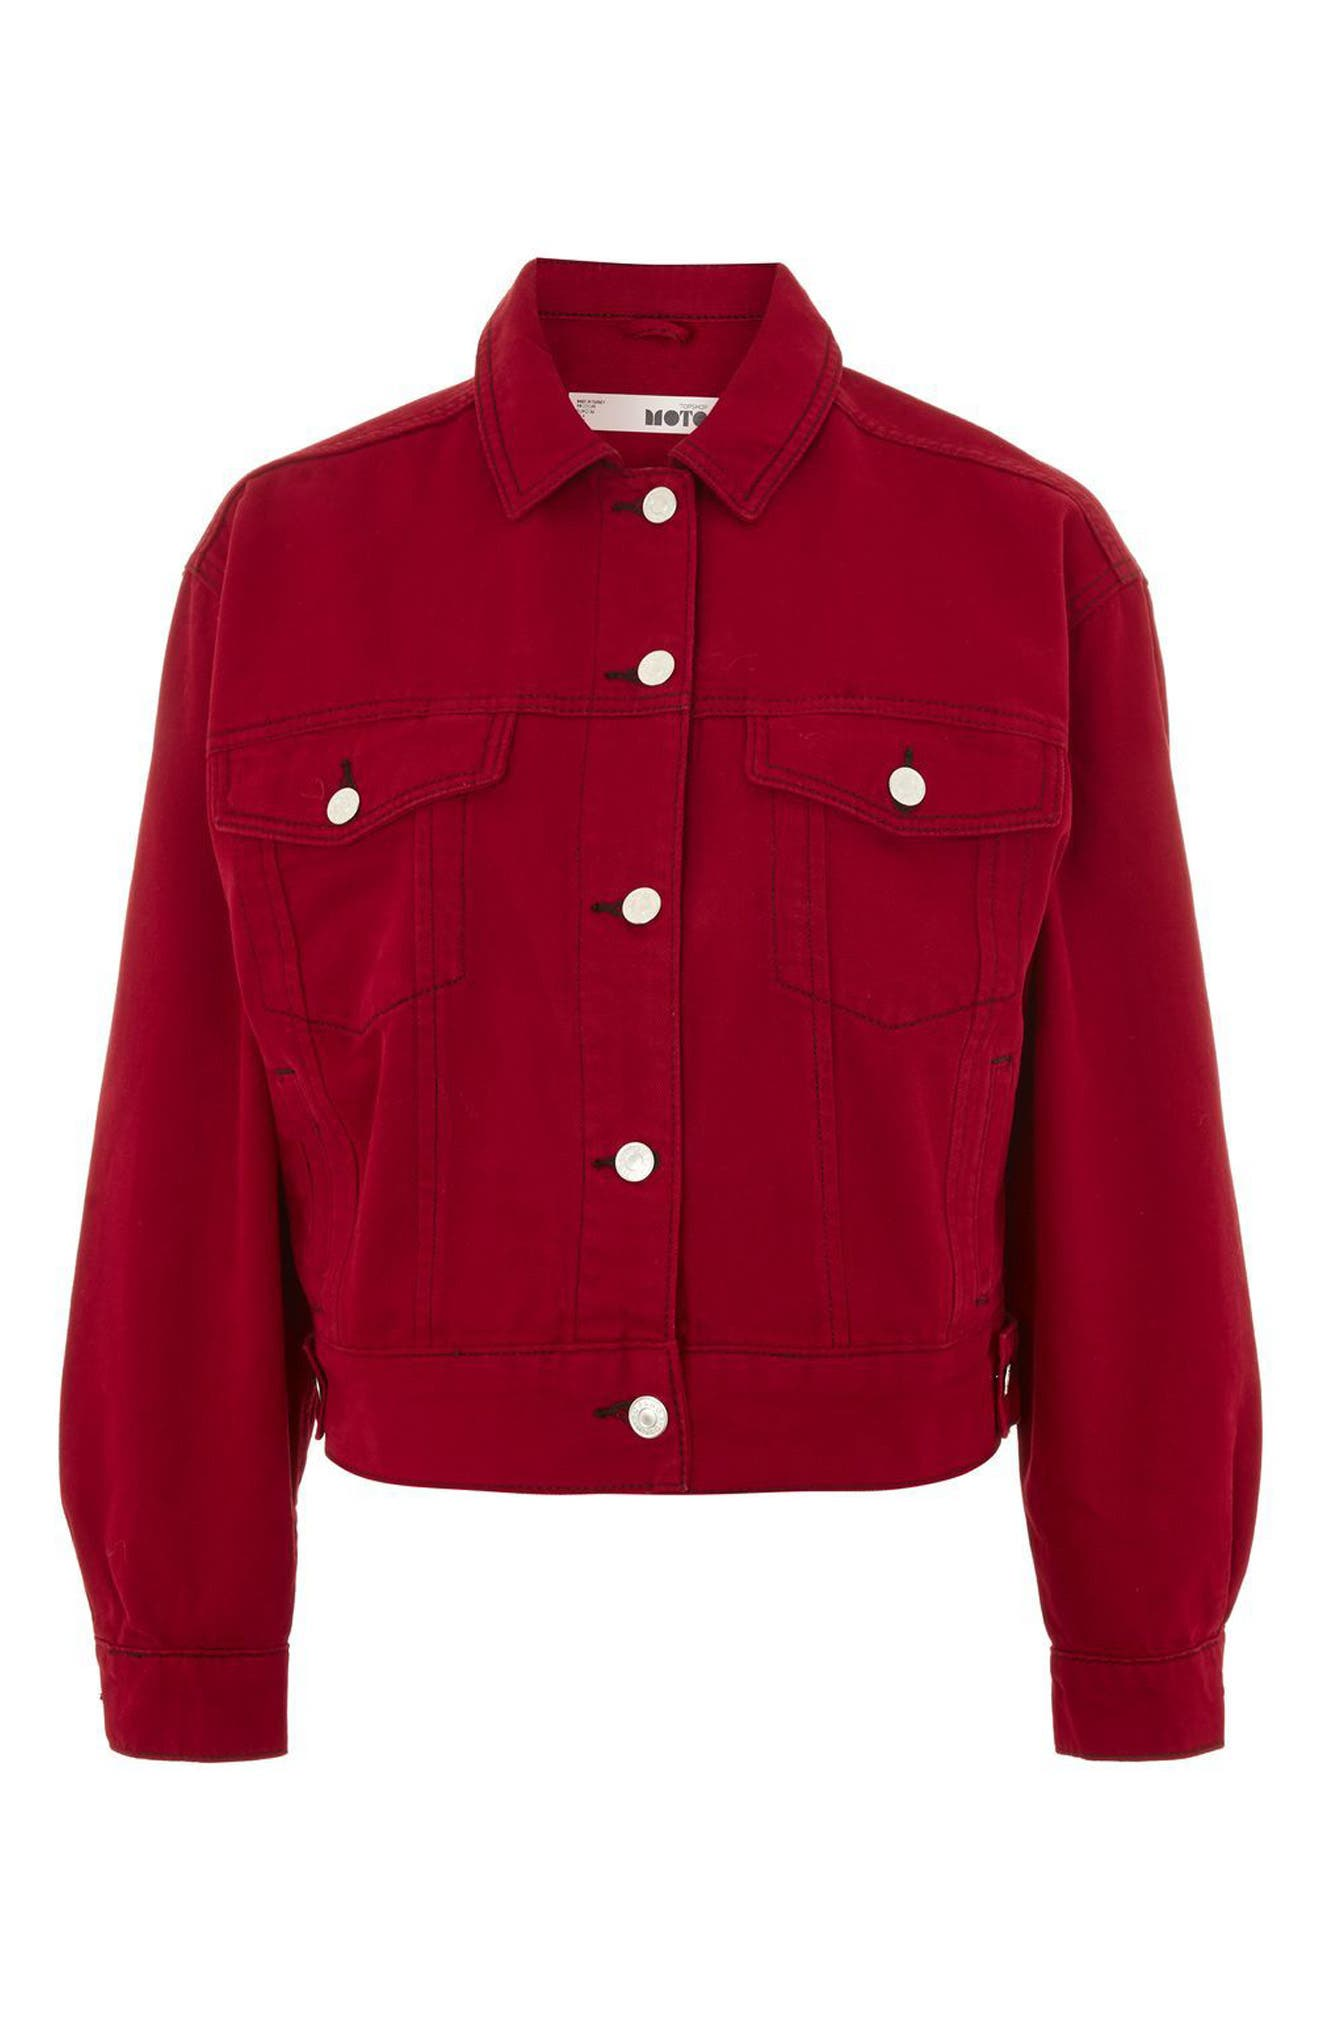 TOPSHOP,                             Boxy Denim Jacket,                             Alternate thumbnail 3, color,                             600